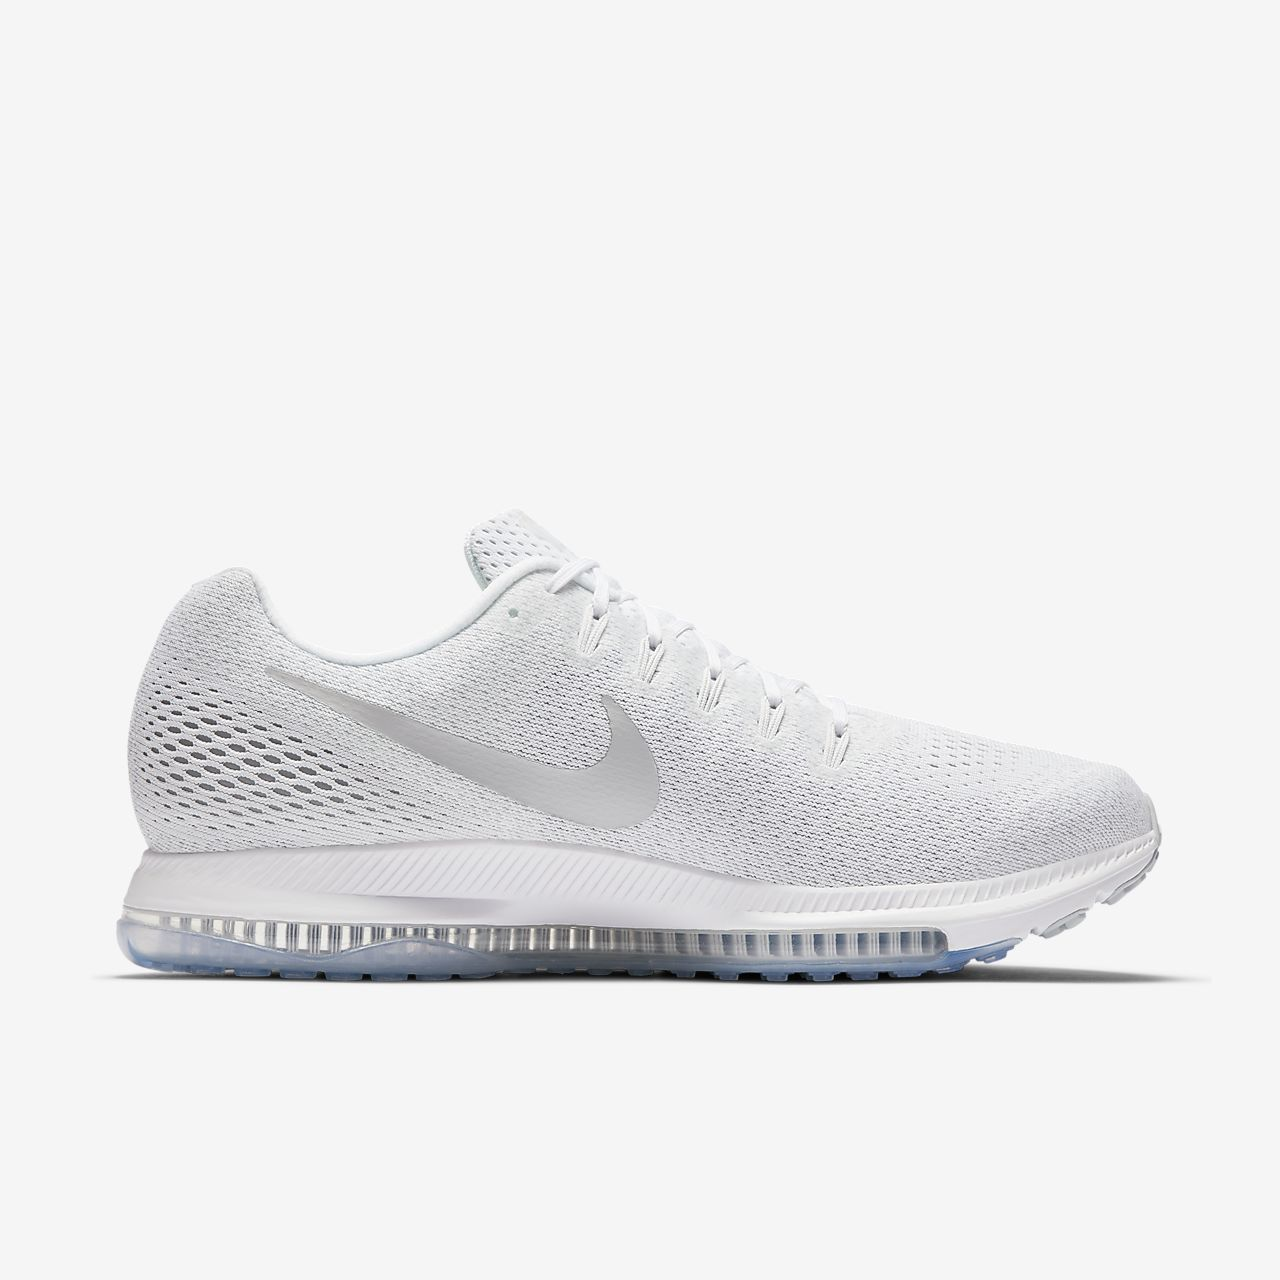 ... Nike Zoom All Out Low Men's Running Shoe